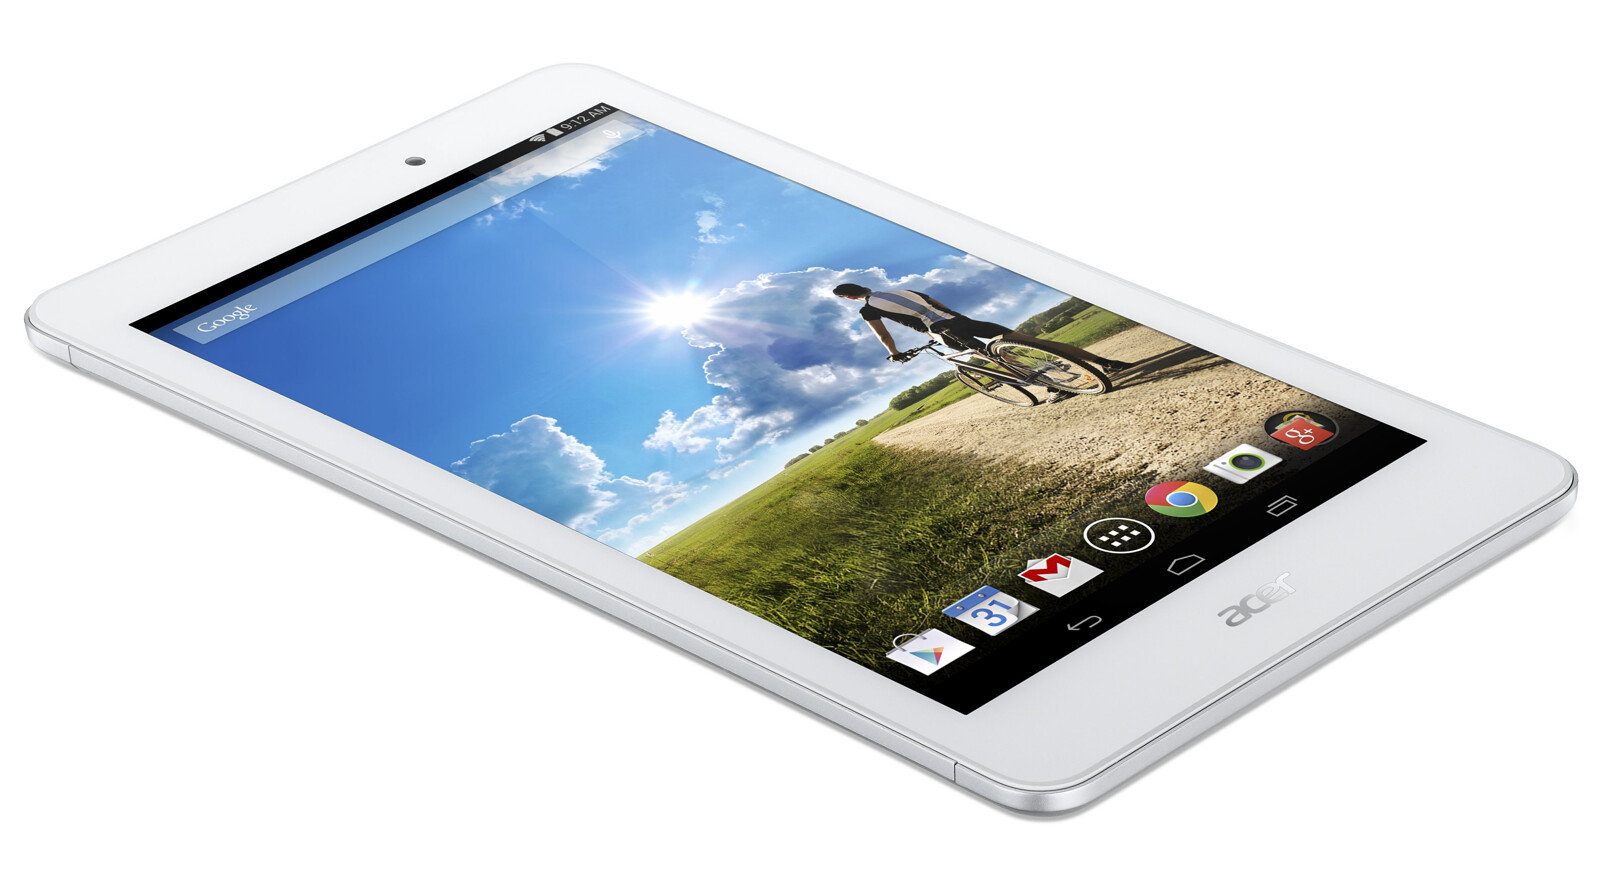 Acer intros new Iconia Tab 8 Android tablet, quad-core ...